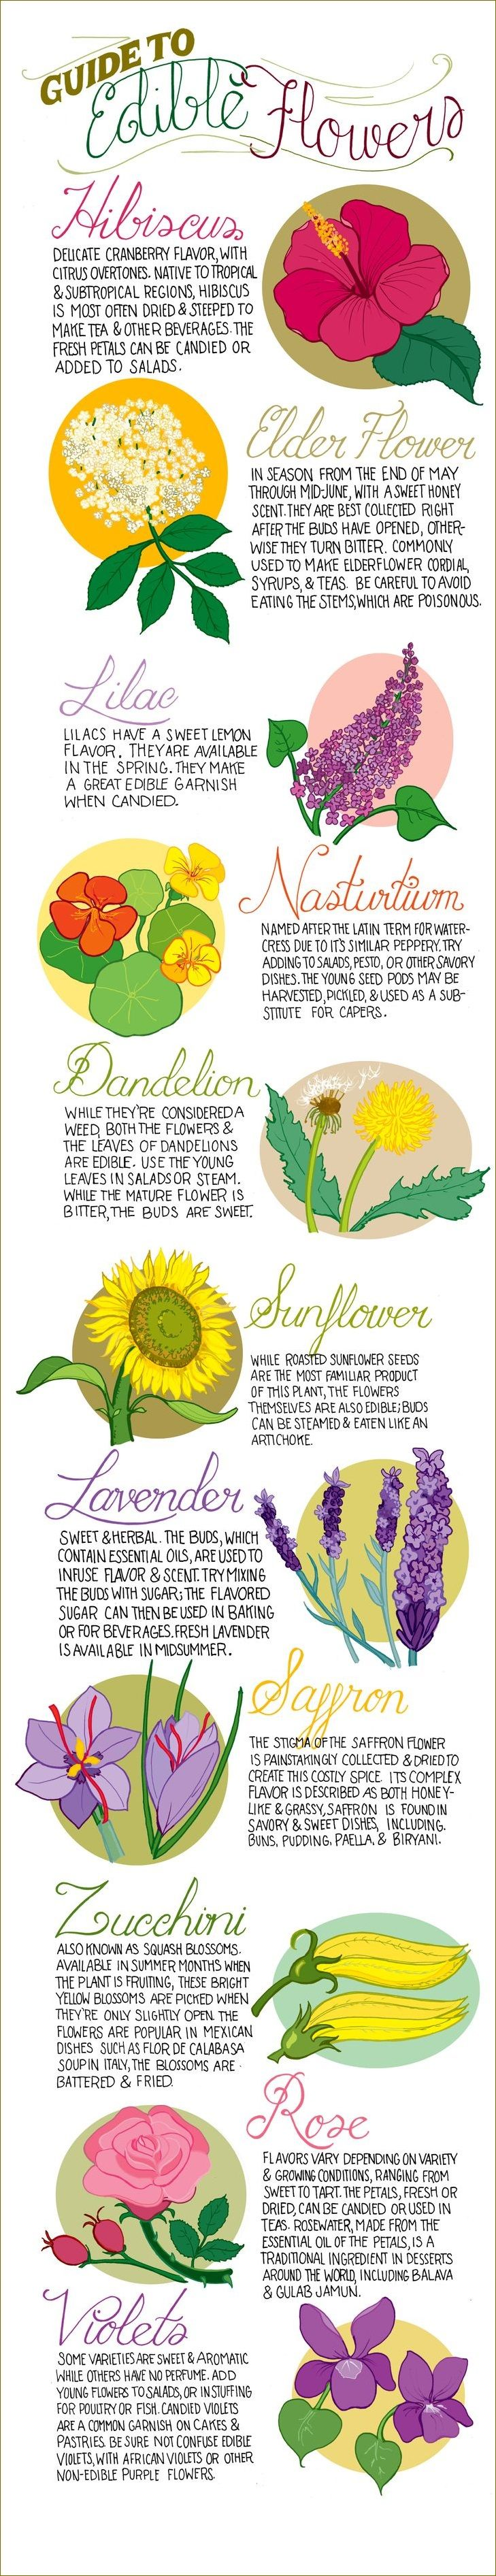 Top 11 Most Edible Flowers: http://homeandgardenamerica.com/top-11-most-edible-flowers